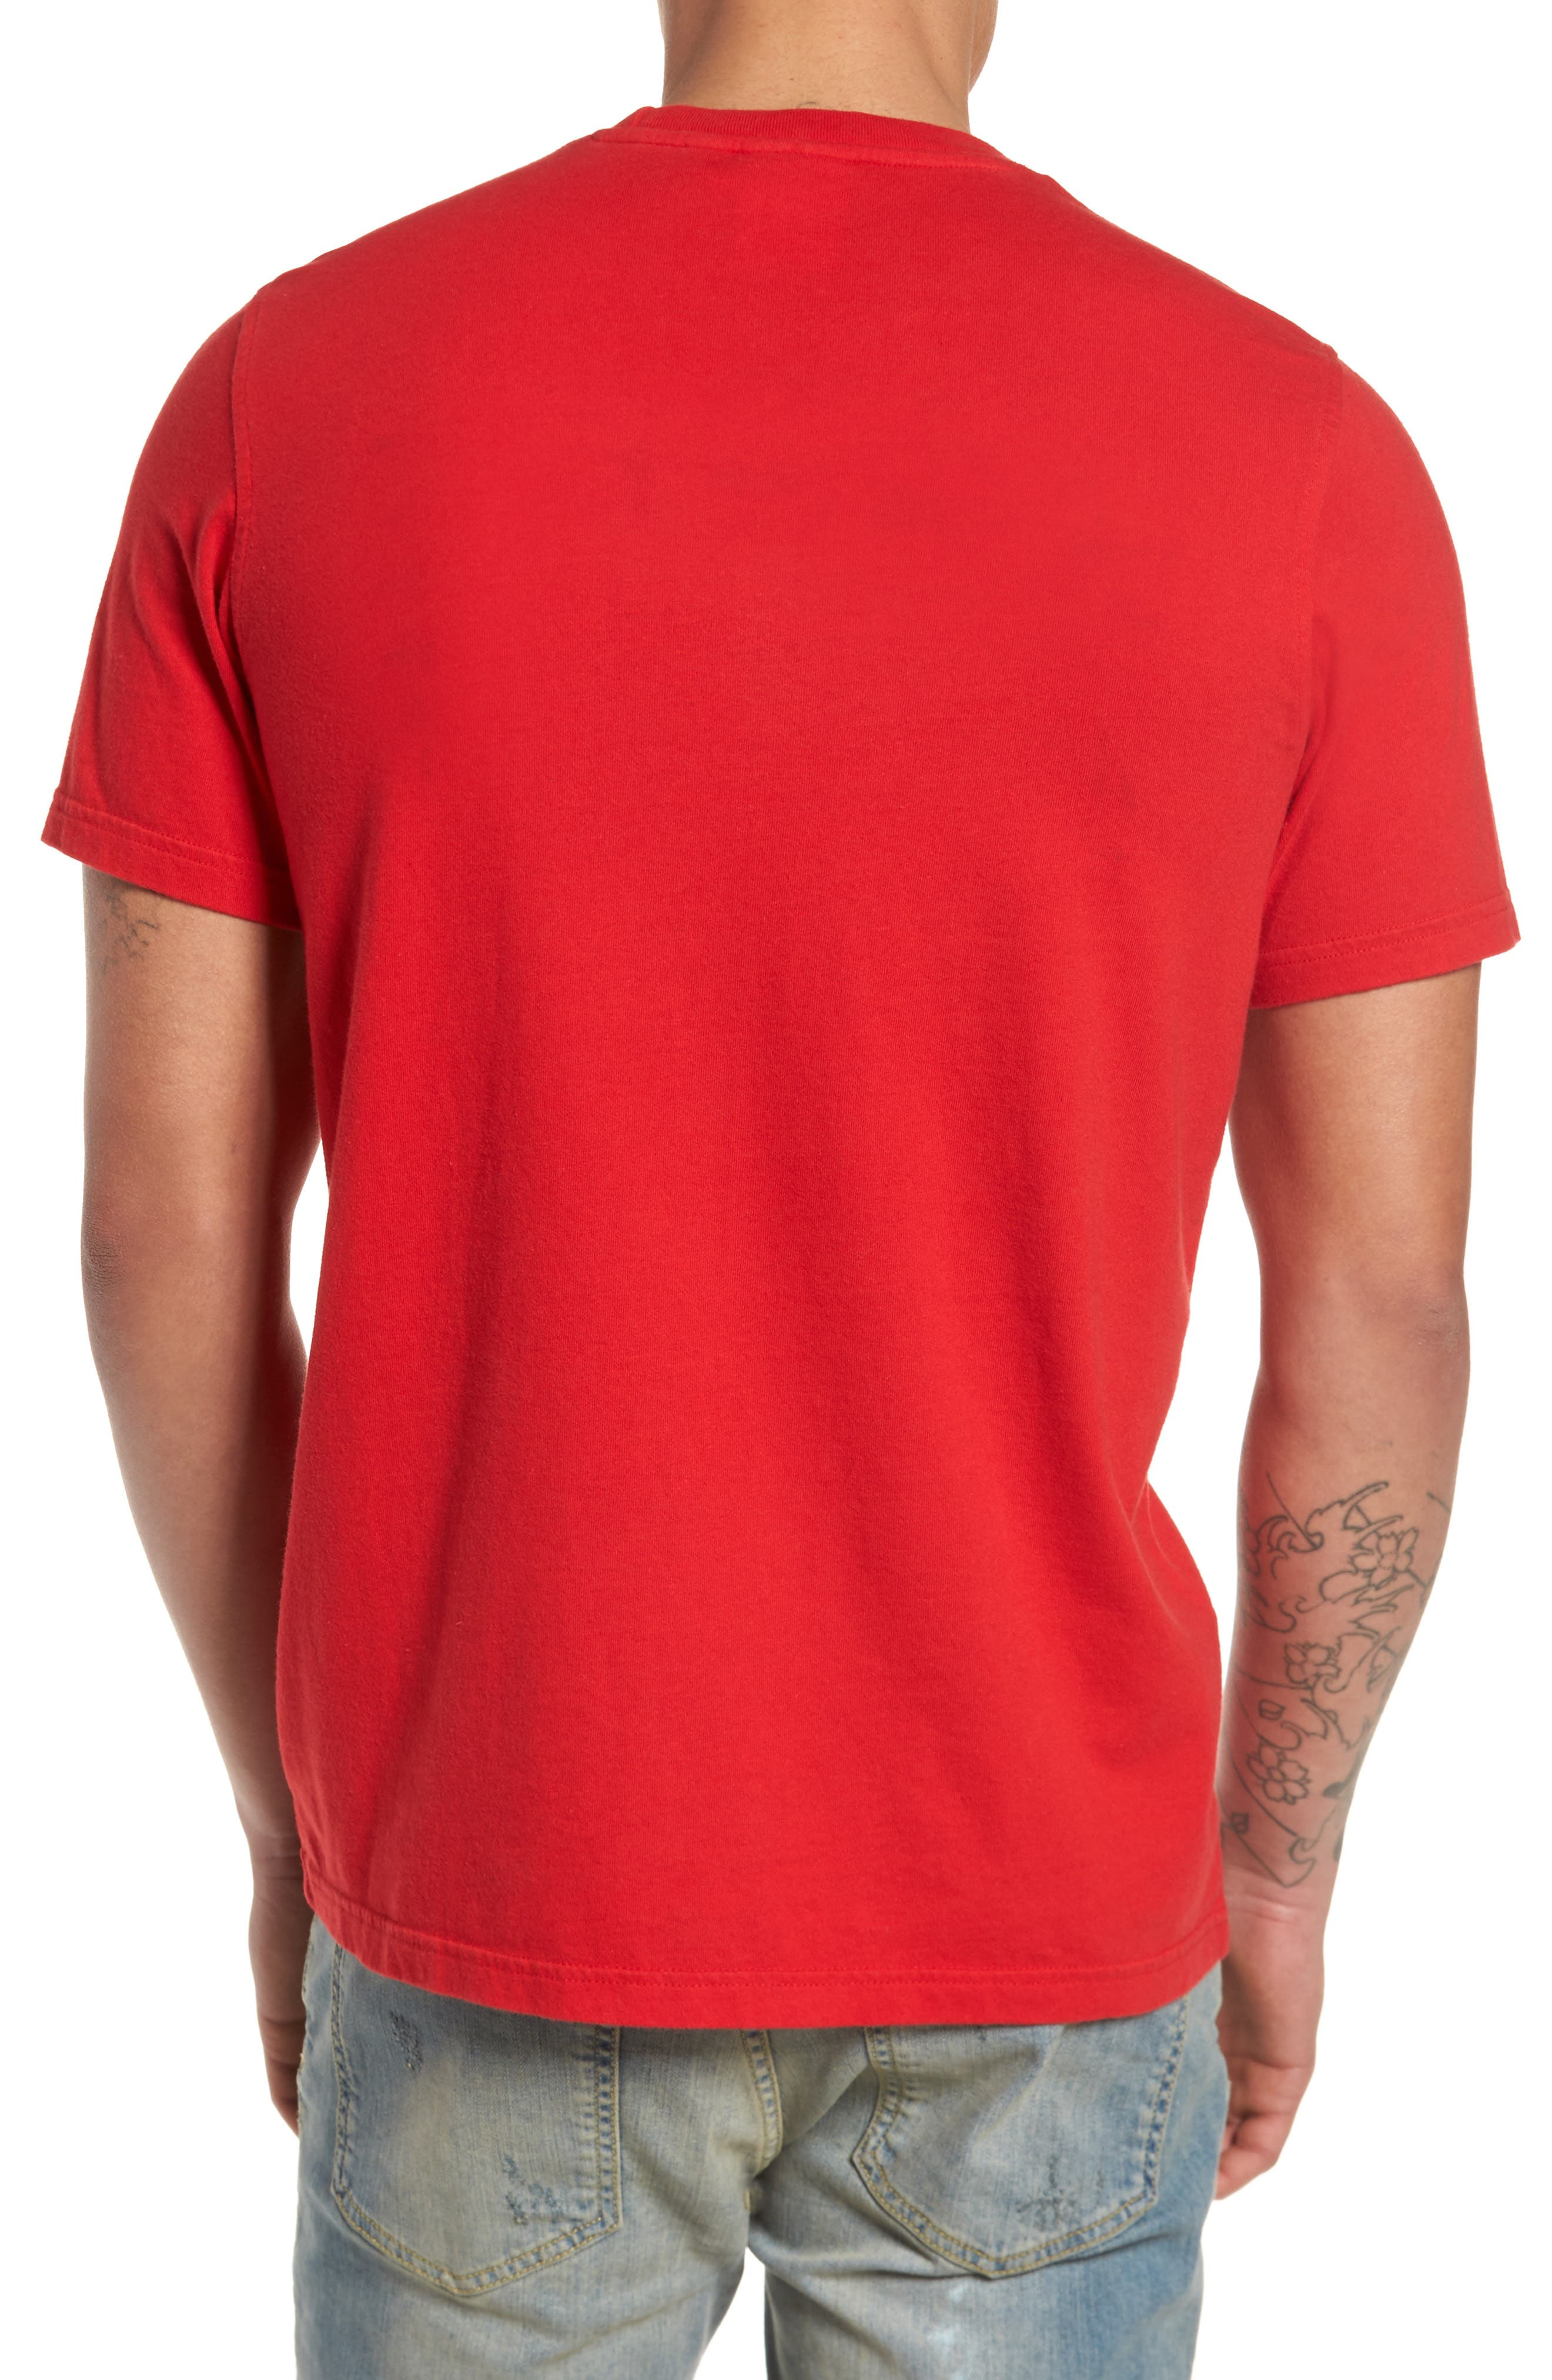 Trefoil T-Shirt,                             Alternate thumbnail 2, color,                             610